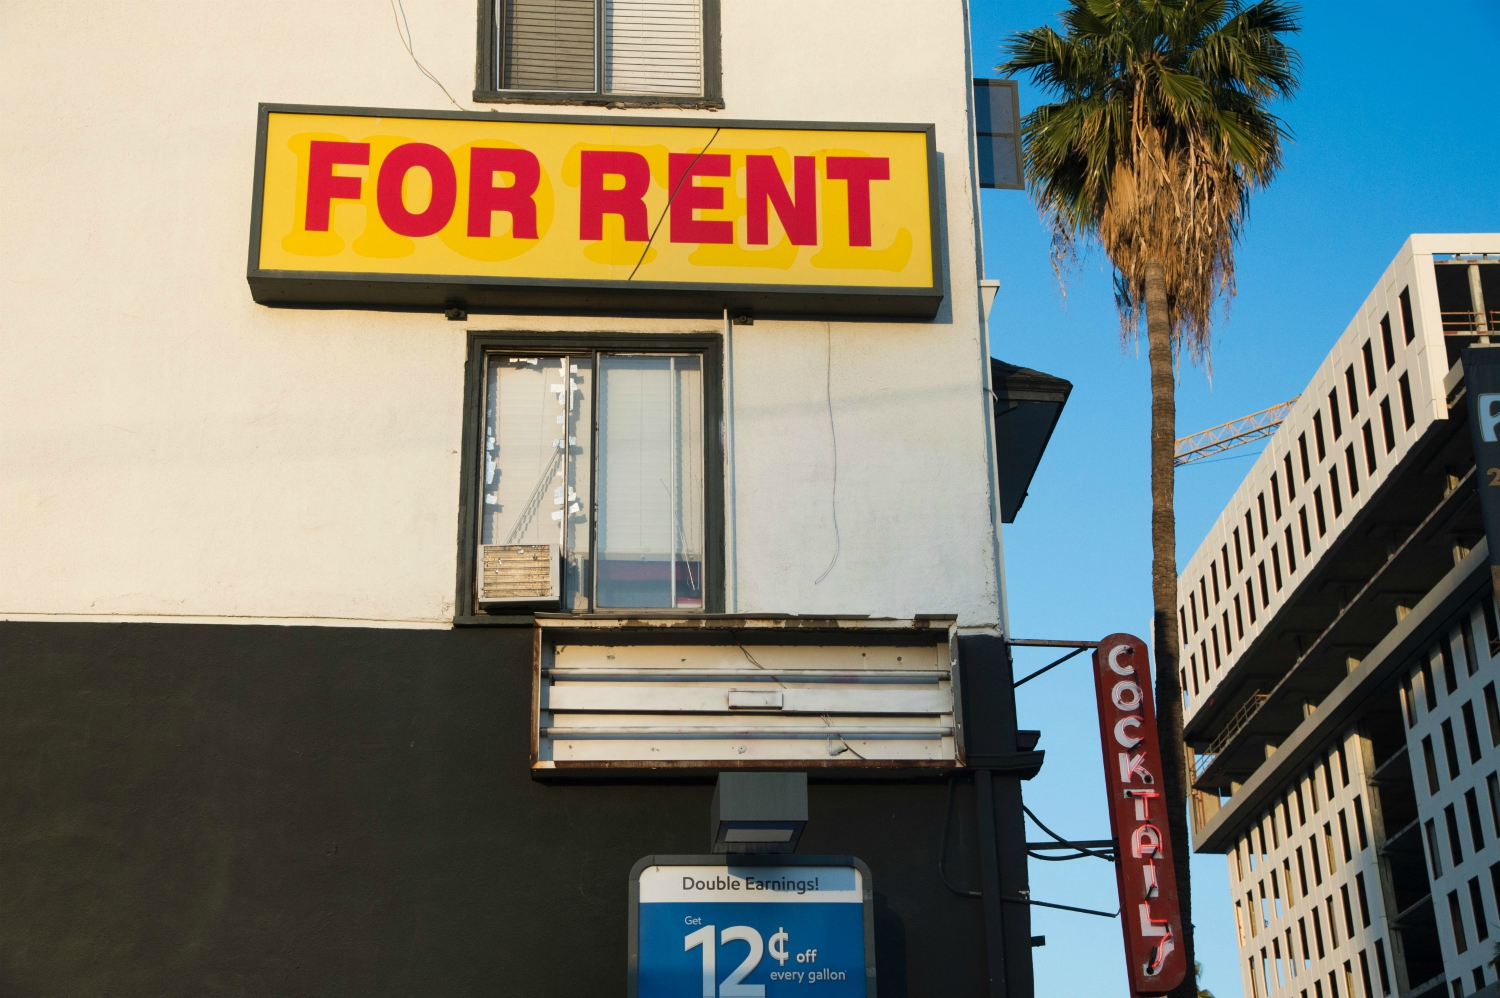 Why Didn't the Landlord Lobby Fight California's New Statewide Rent Control Law?